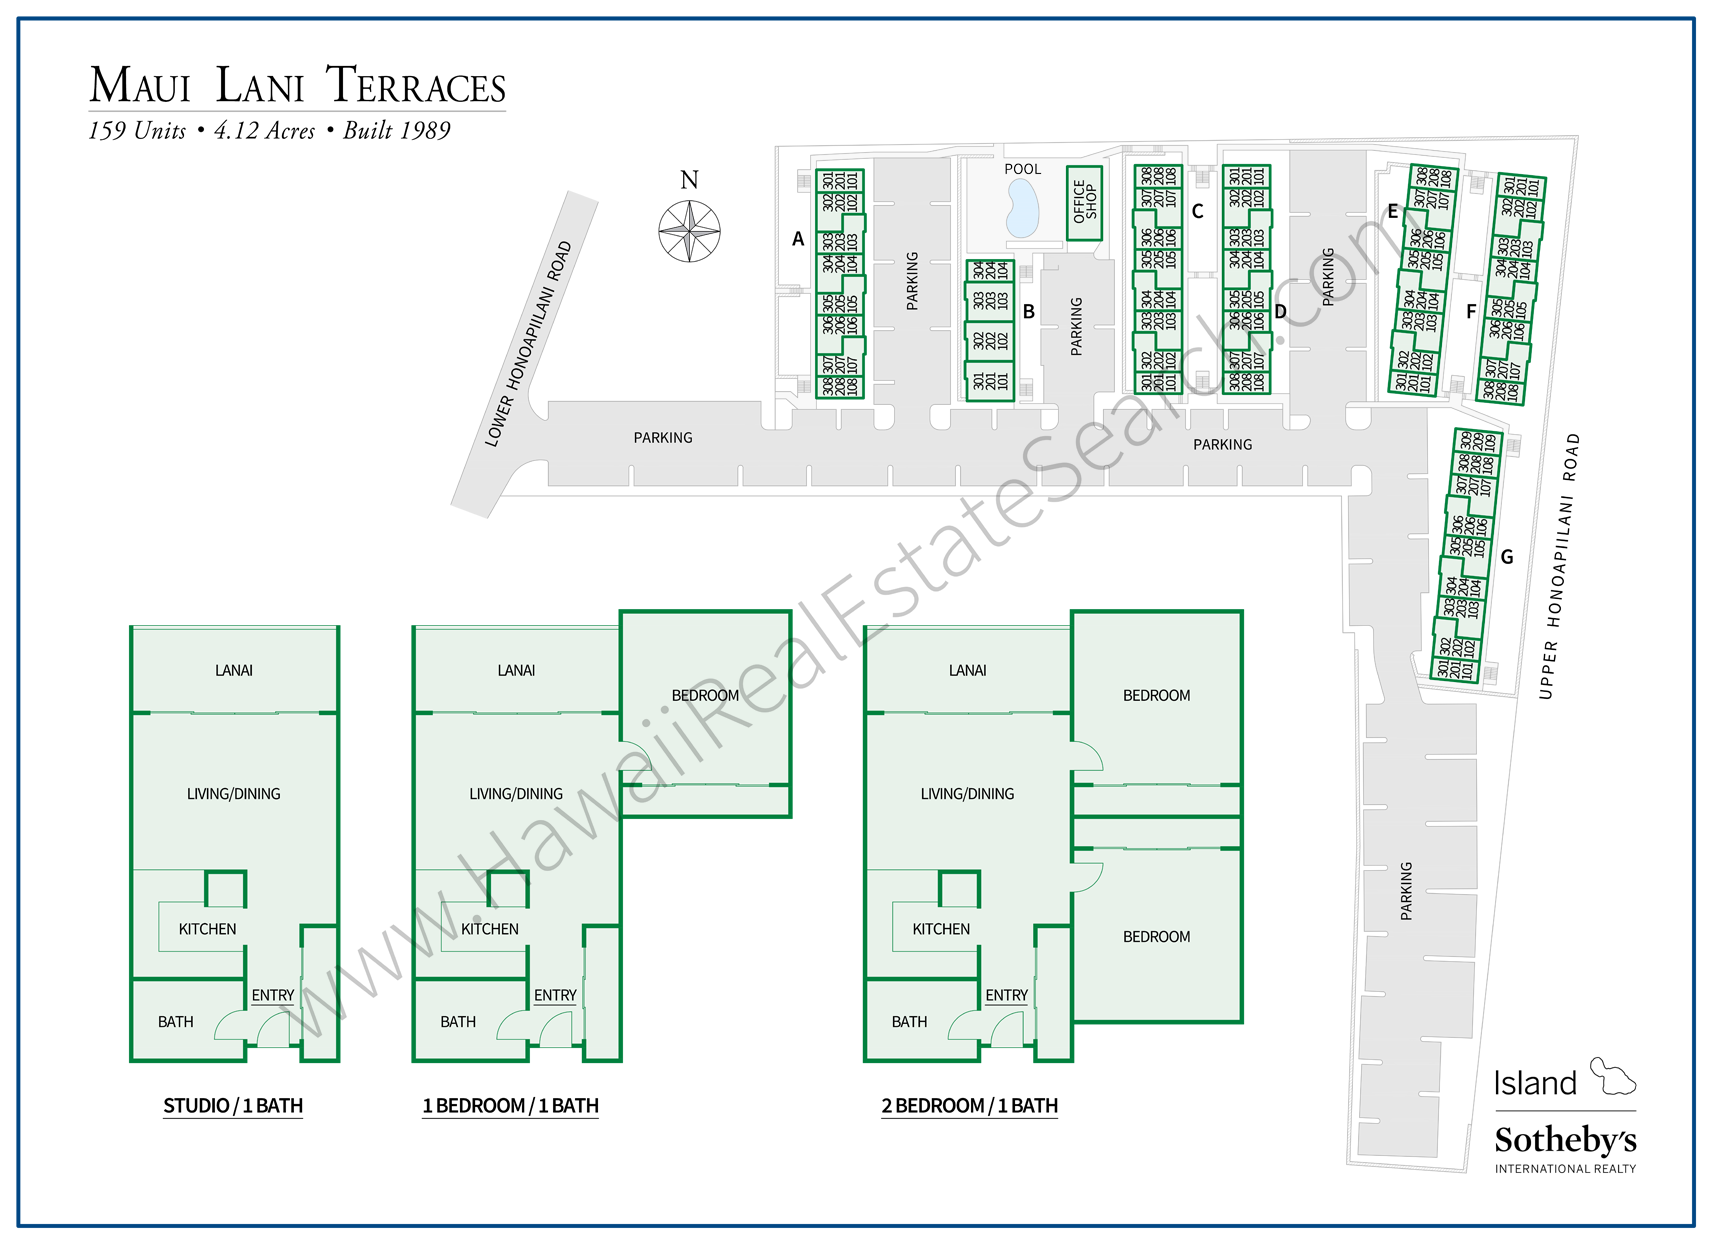 maui lani terraces map and floor plans